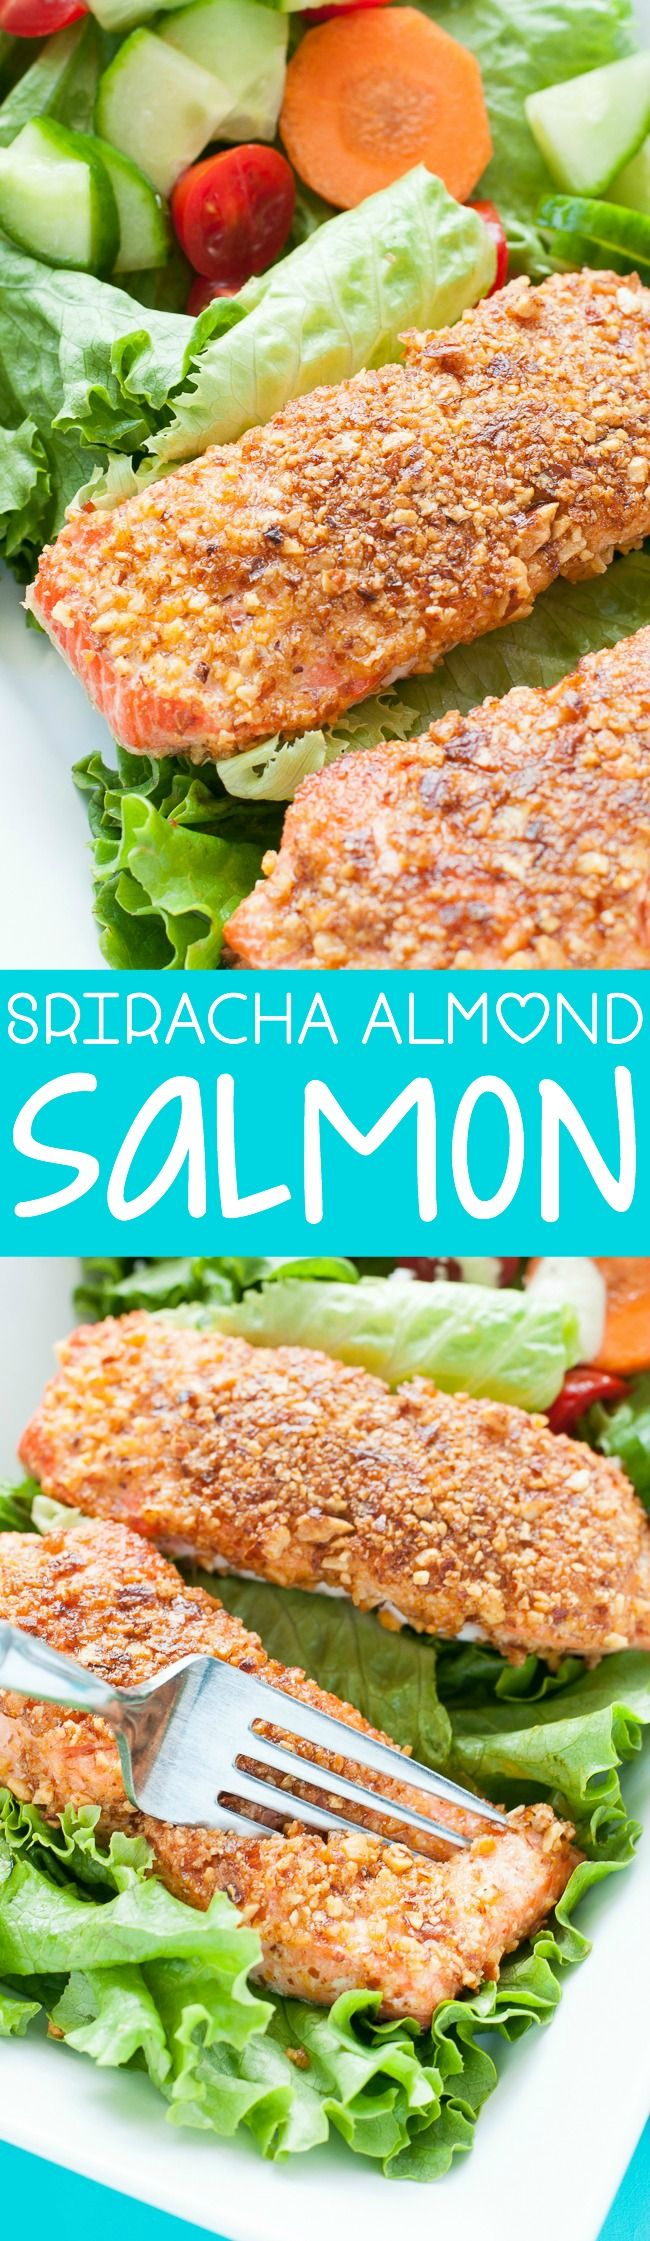 Sriracha Almond Salmon - a tasty weeknight dinner. Quick, easy, and healthy too!